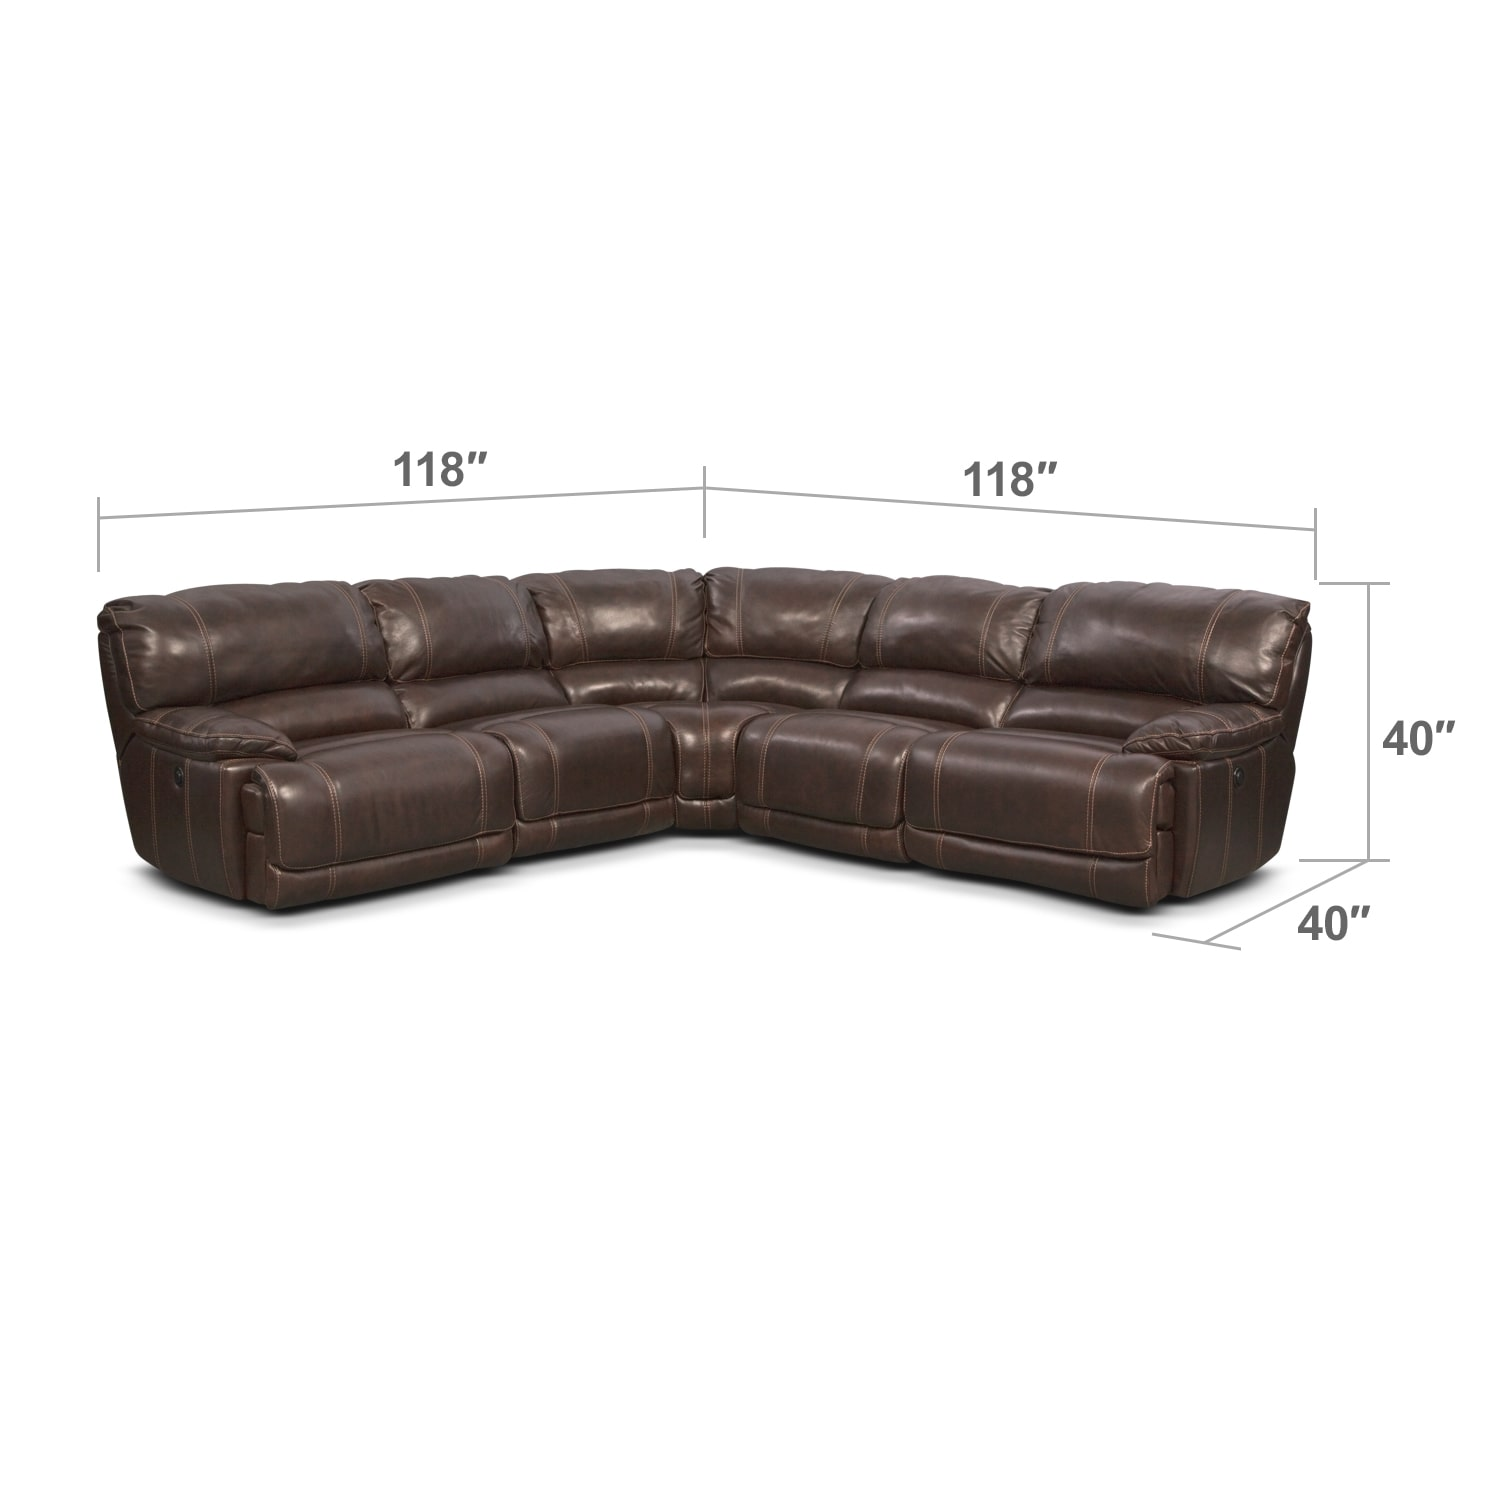 Living Room Furniture - Clinton Brown 5 Pc. Power Reclining Sectional